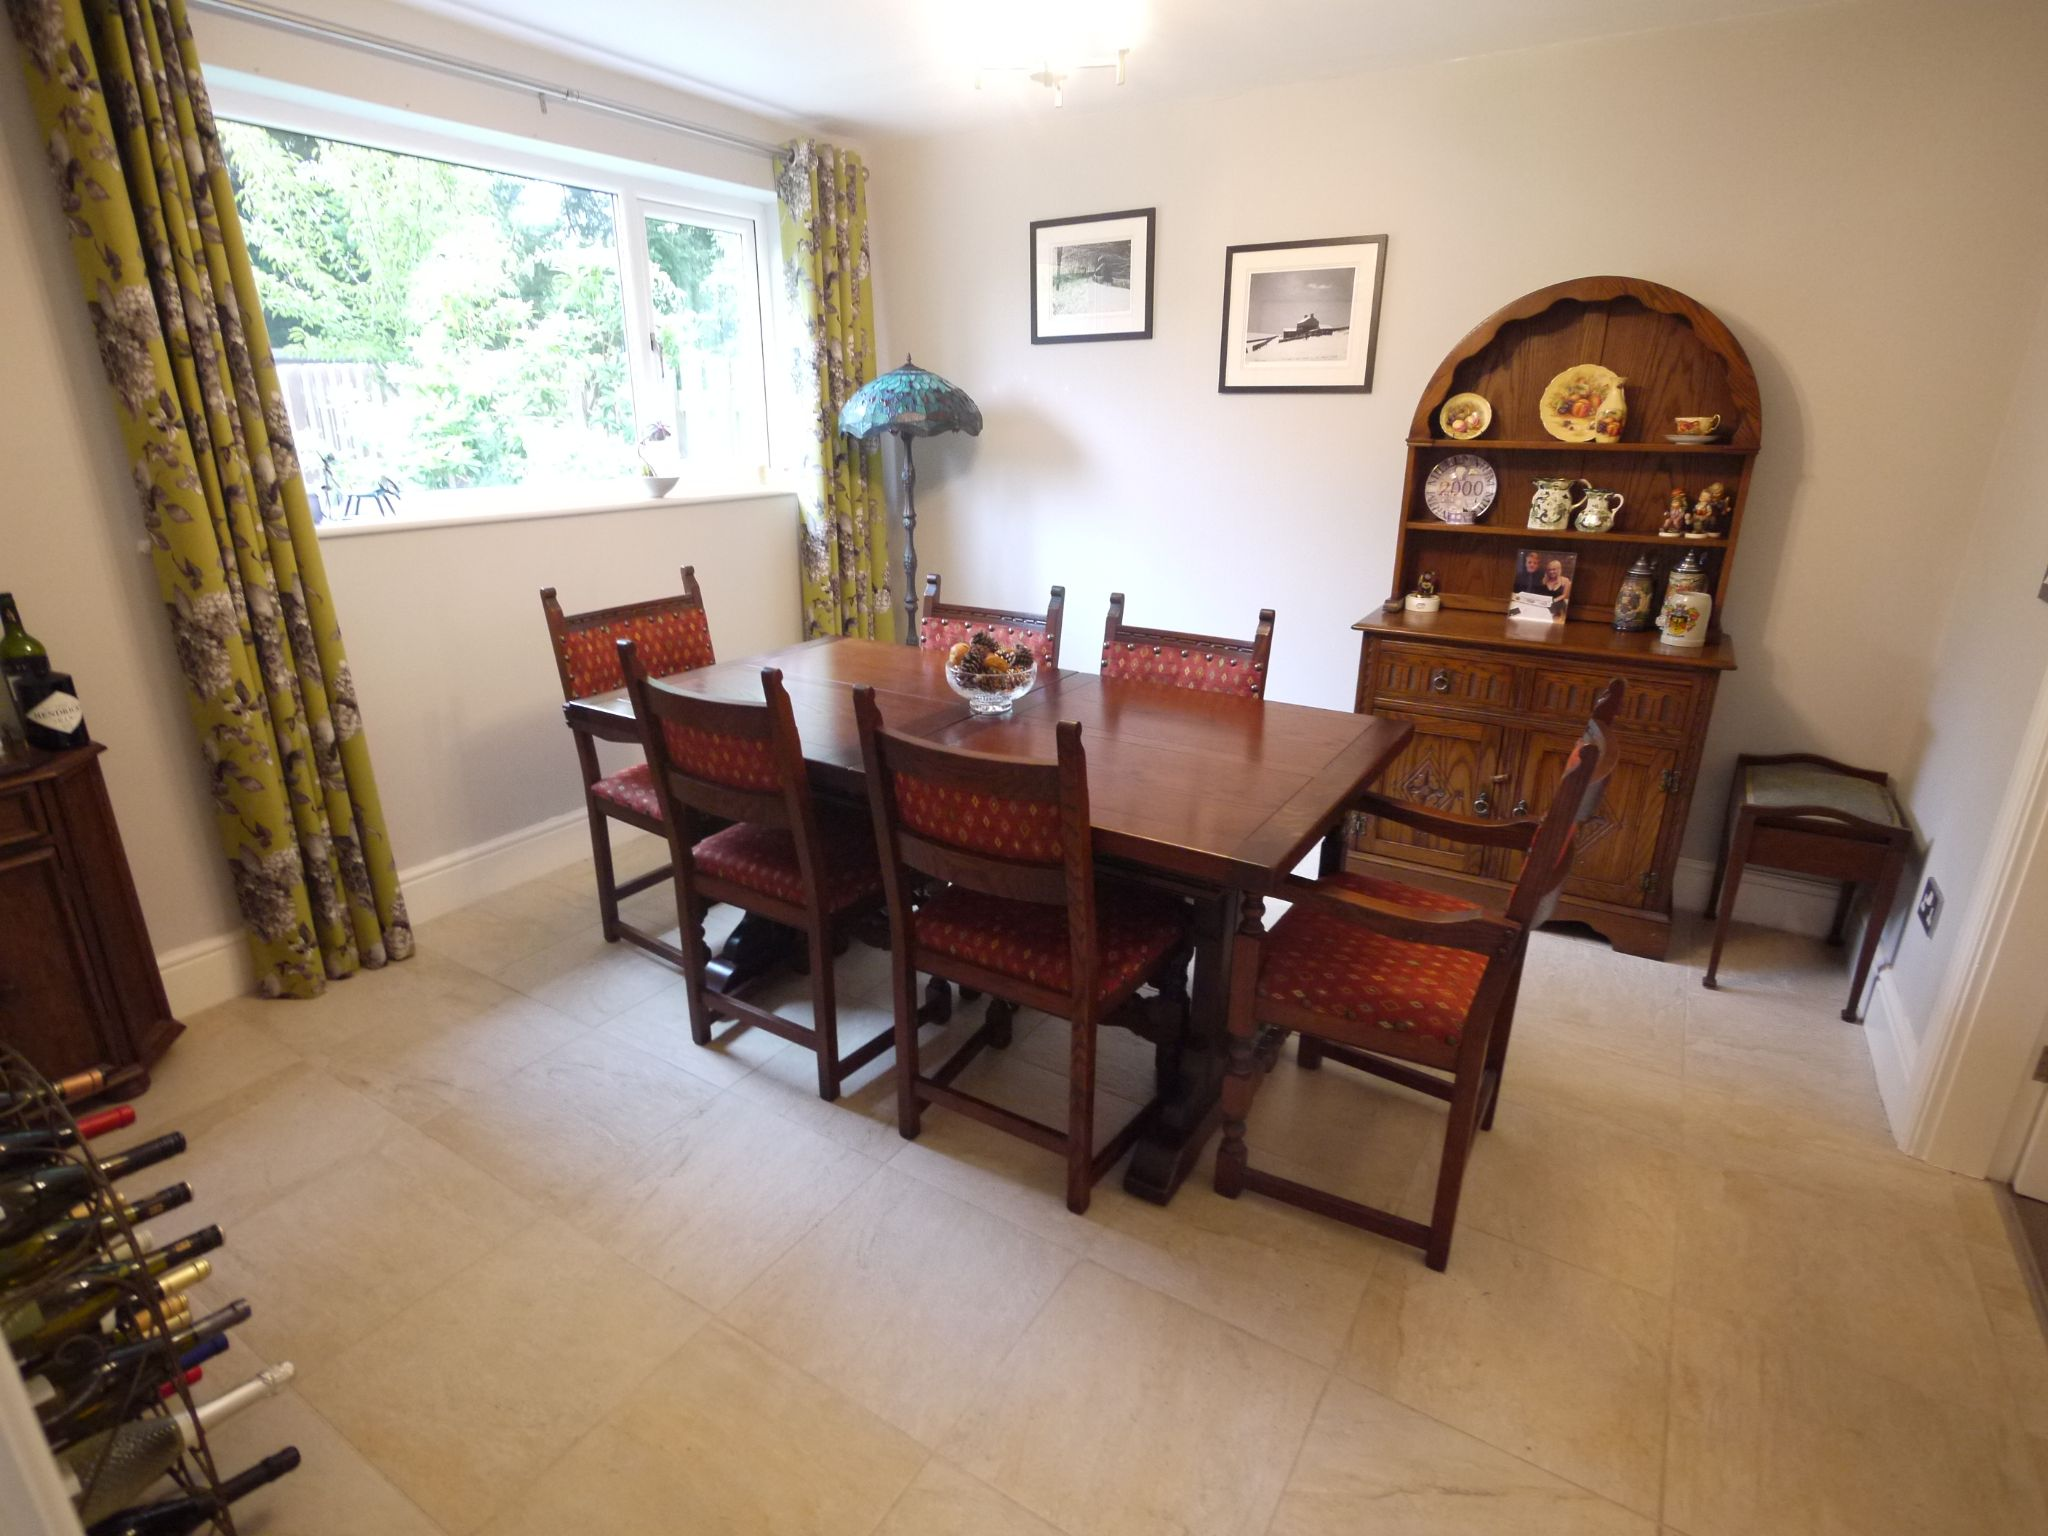 6 bedroom detached house SSTC in Halifax - Dining room.